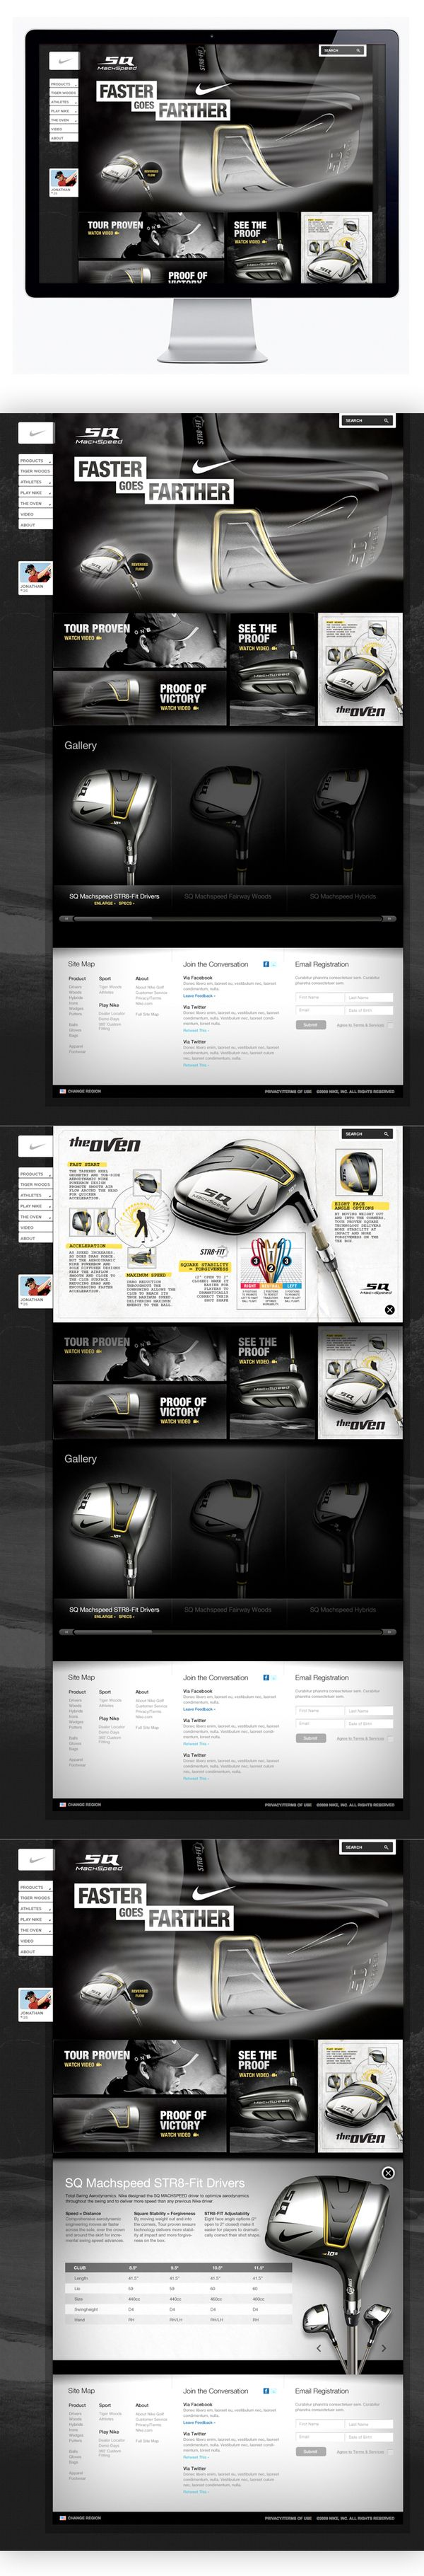 Nike Golf - Machspeed by Moosesyrup , via Behance - like the footer